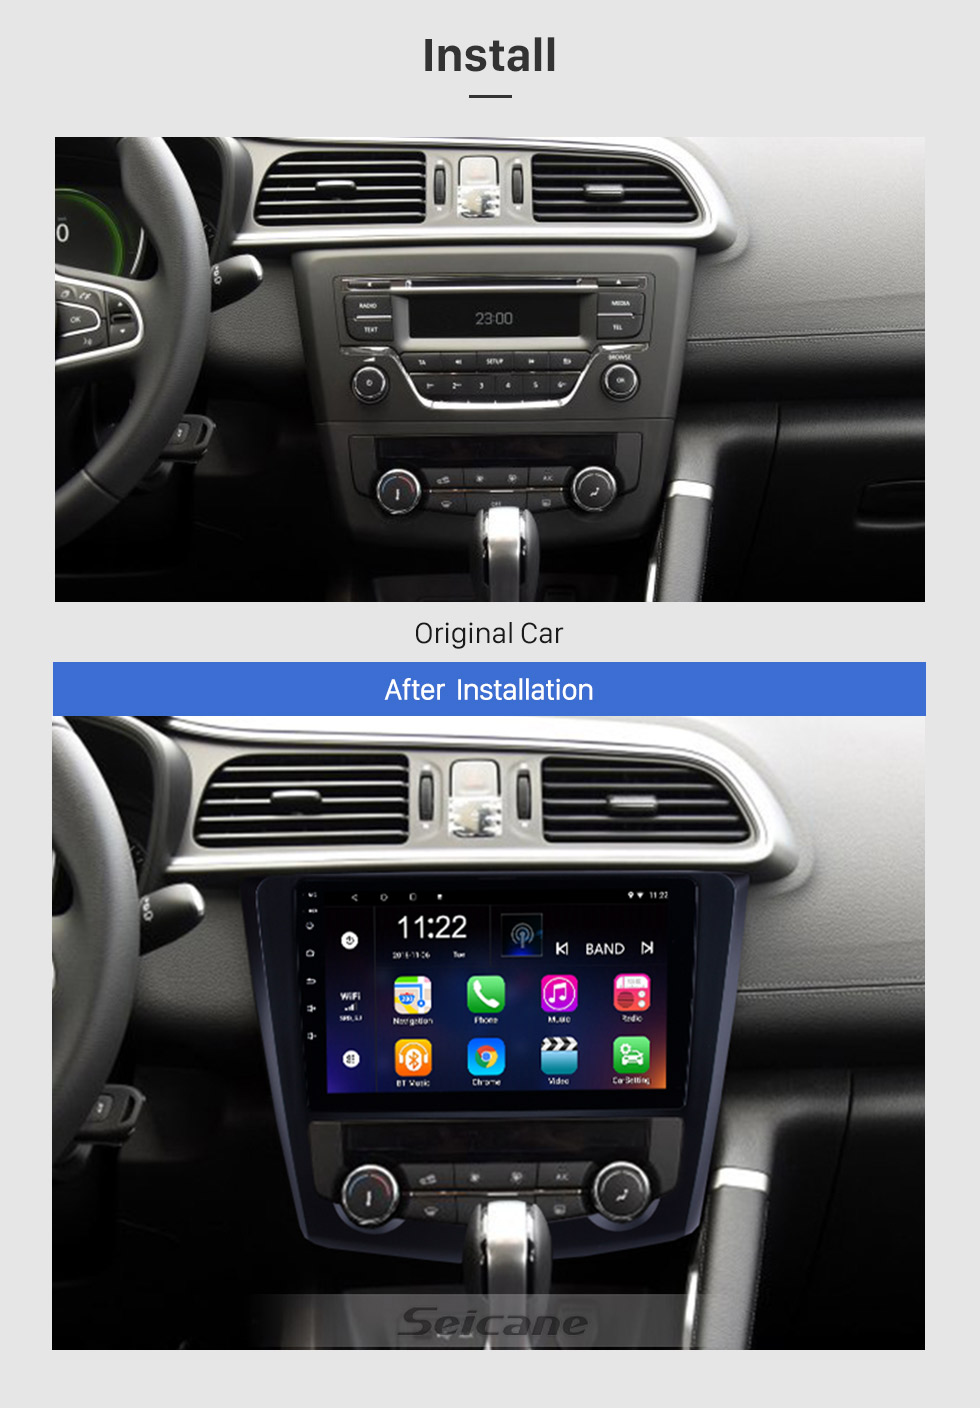 Seicane 9 inch 2016 2017 Renault Kadjar Android 8.1 HD Touchscreen Auto radio GPS Navigation Bluetooth Car Stereo TV Tuner Rearview Camera AUX IPOD MP3